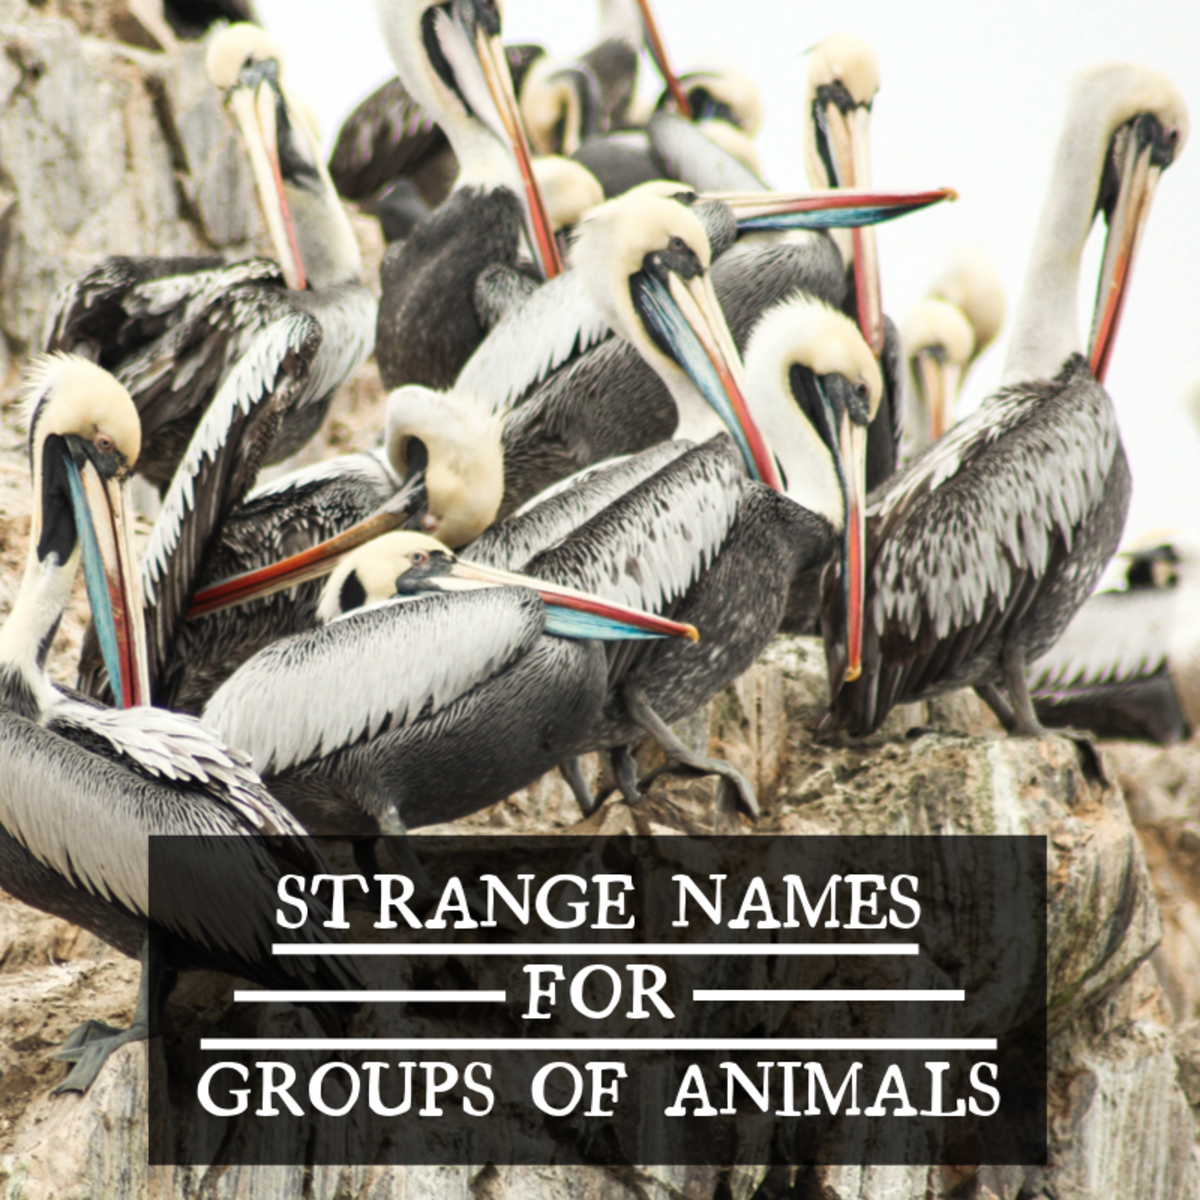 While some animals' collective names have become quite well-known over the years, most are still fairly obscure, and some are just downright strange.